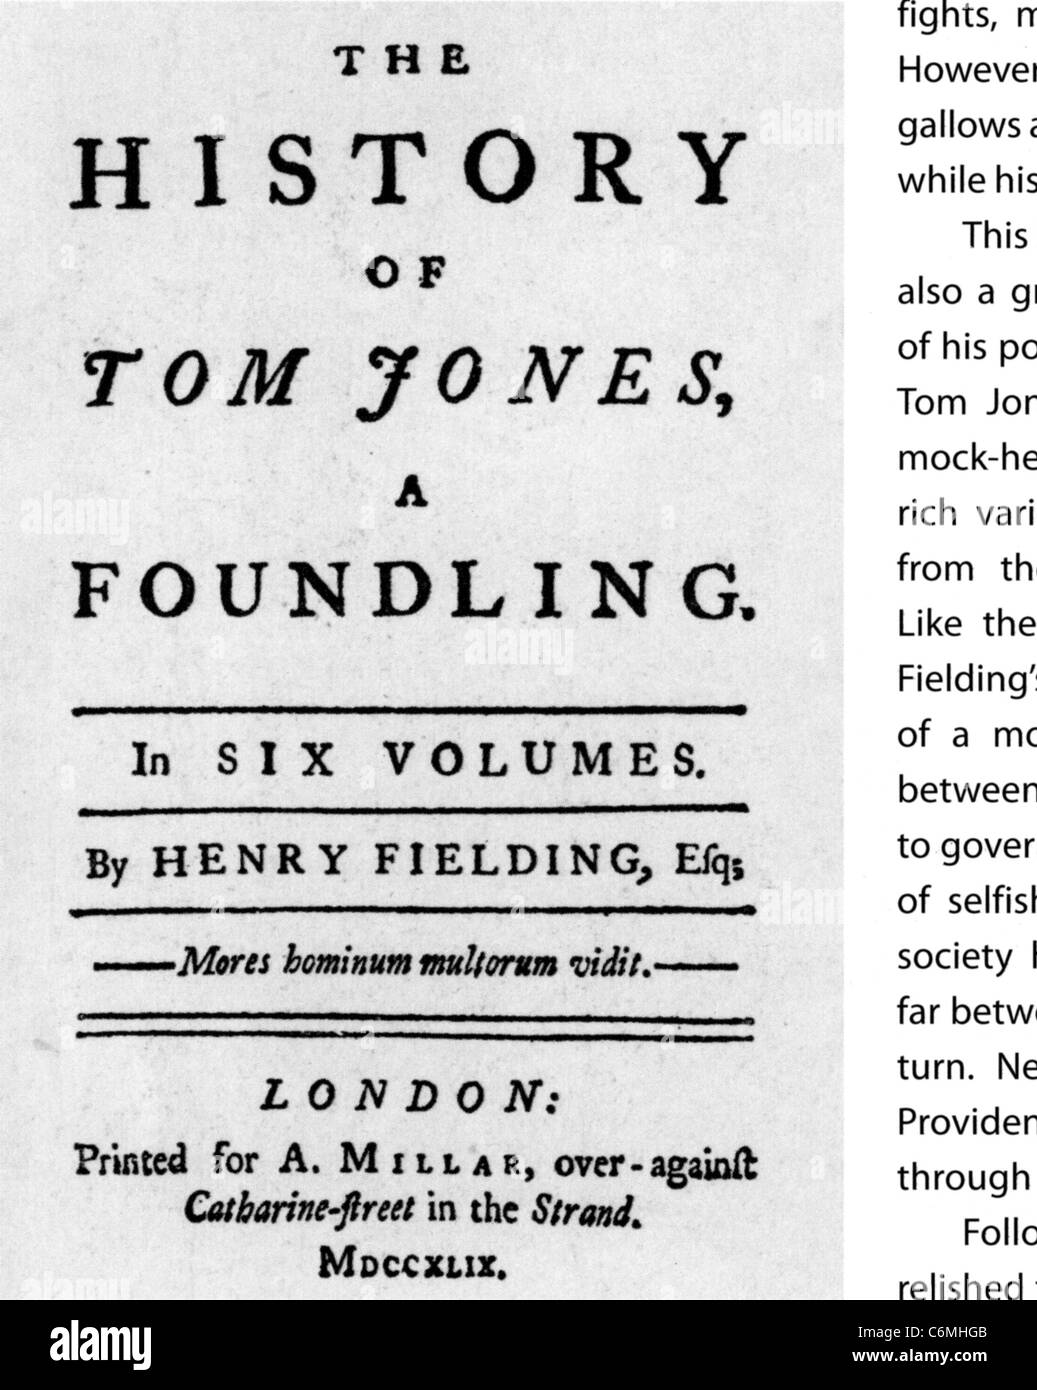 TOM JONES  by Henry Fielding. Title page of the 1749 edition in six volumes - Stock Image